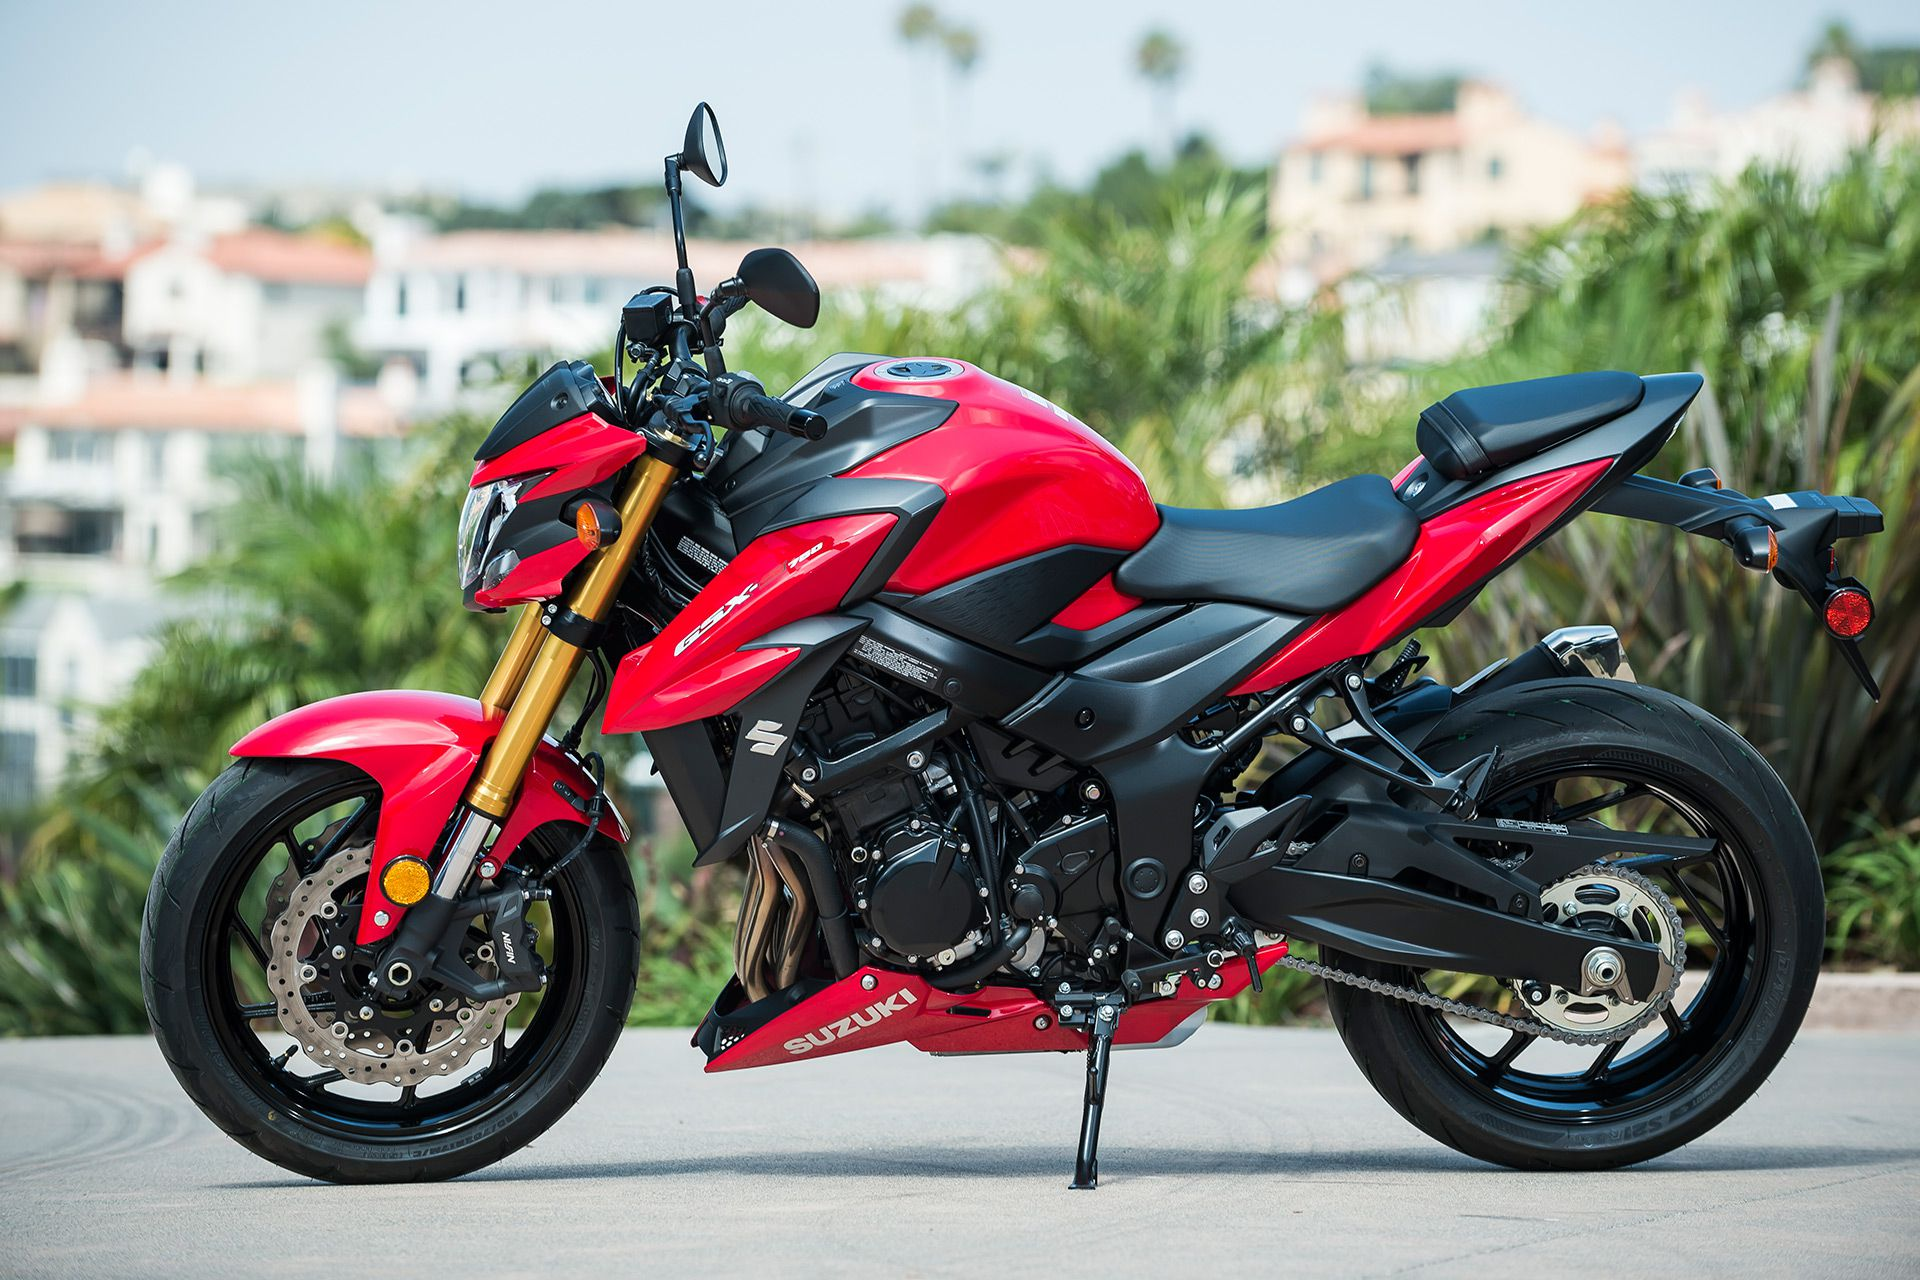 2018 Suzuki GSX-S750 Motorcycle Review | Cycle World